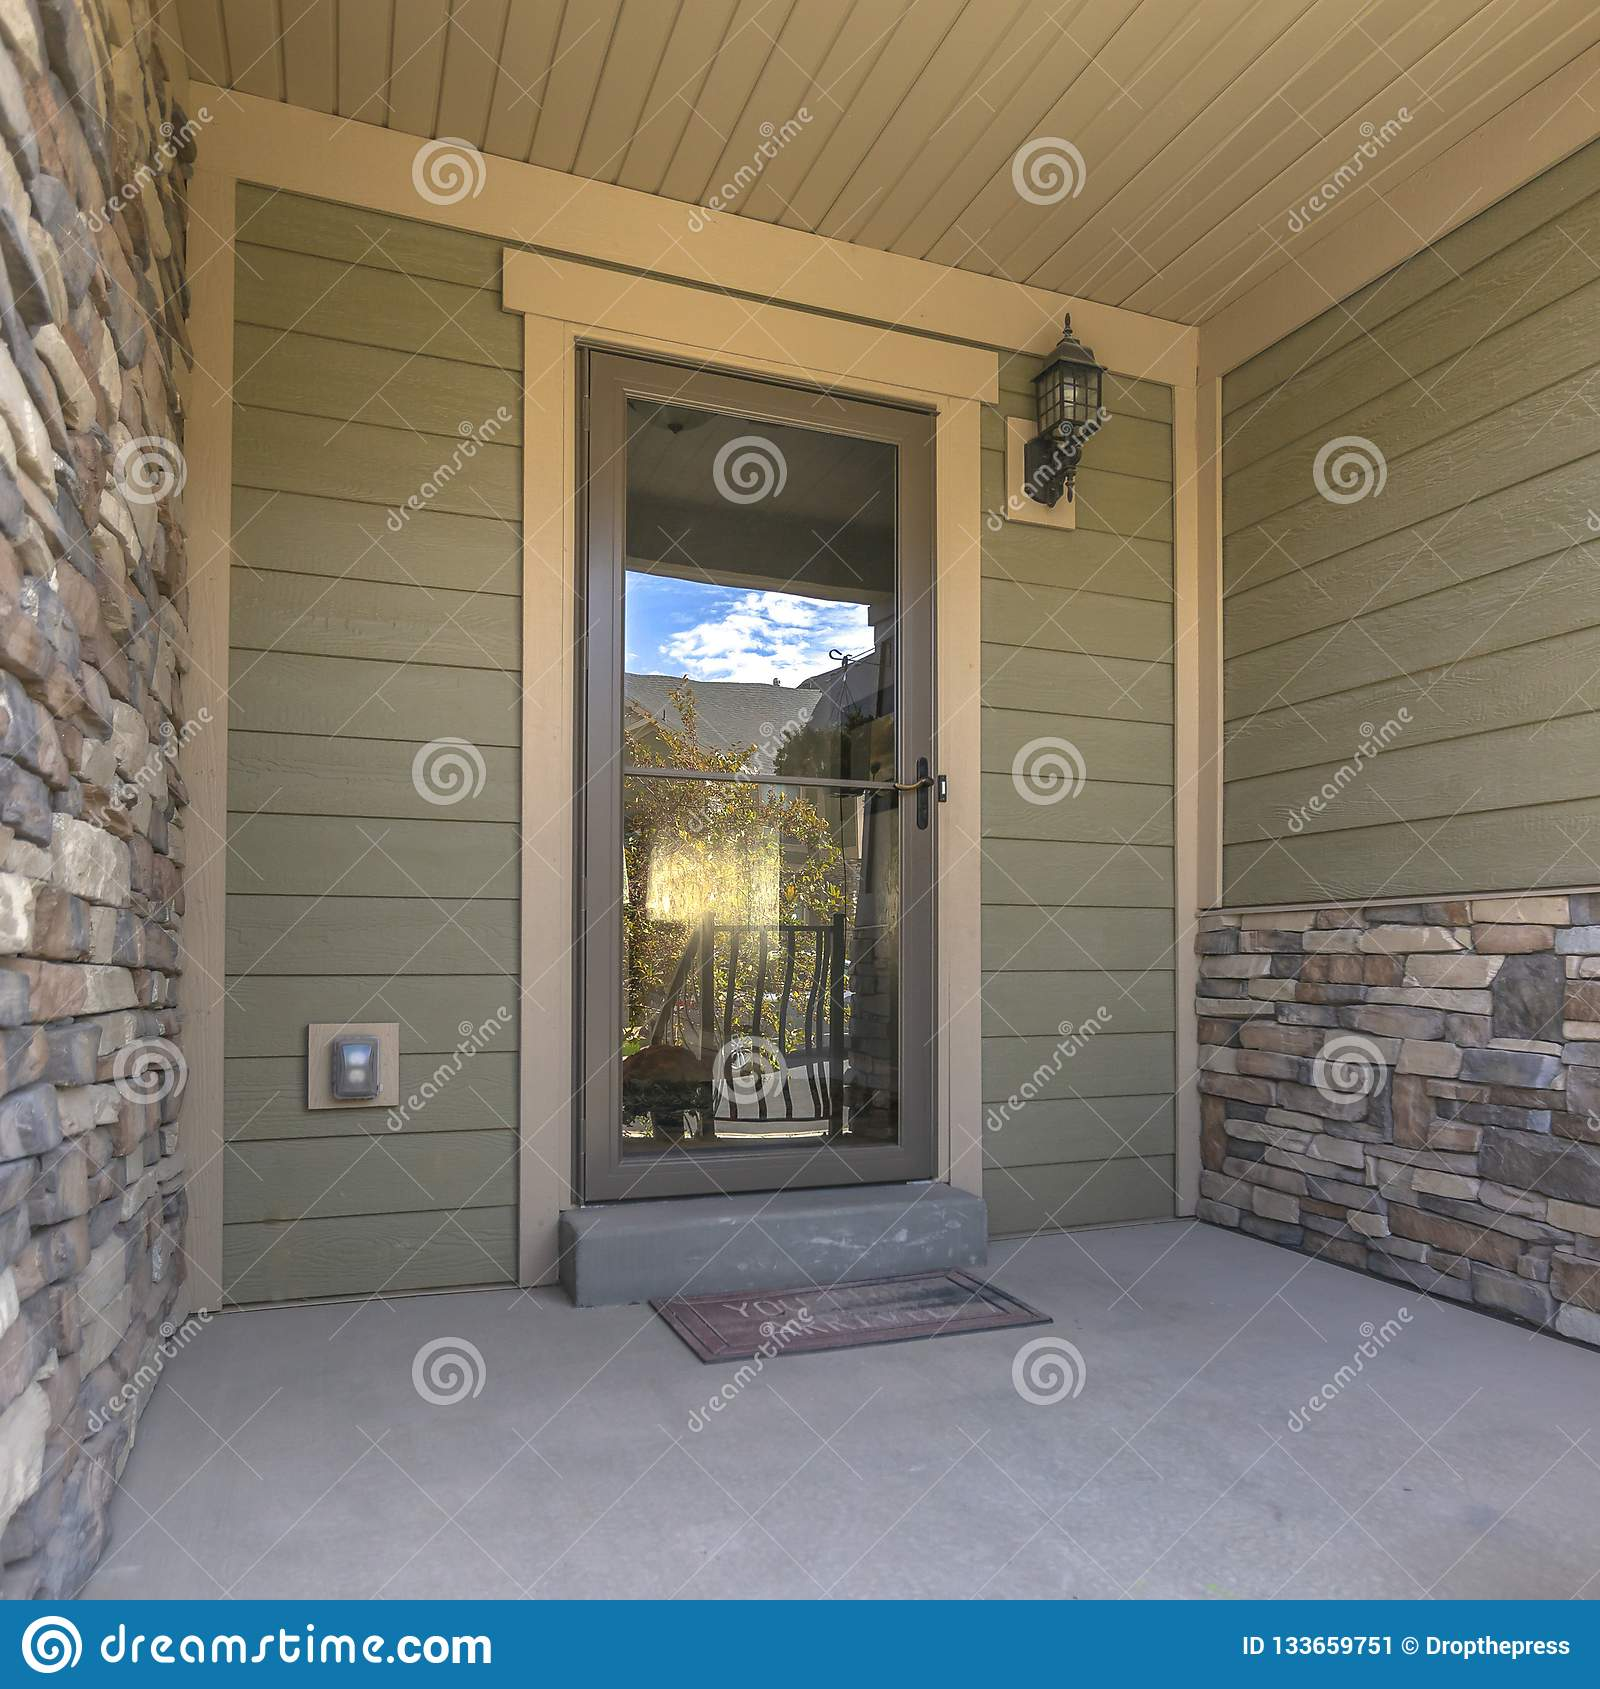 home porch reflective glass front door entryway reflecting stairs trees sunny sky has wooden brick exterior wall 133659751